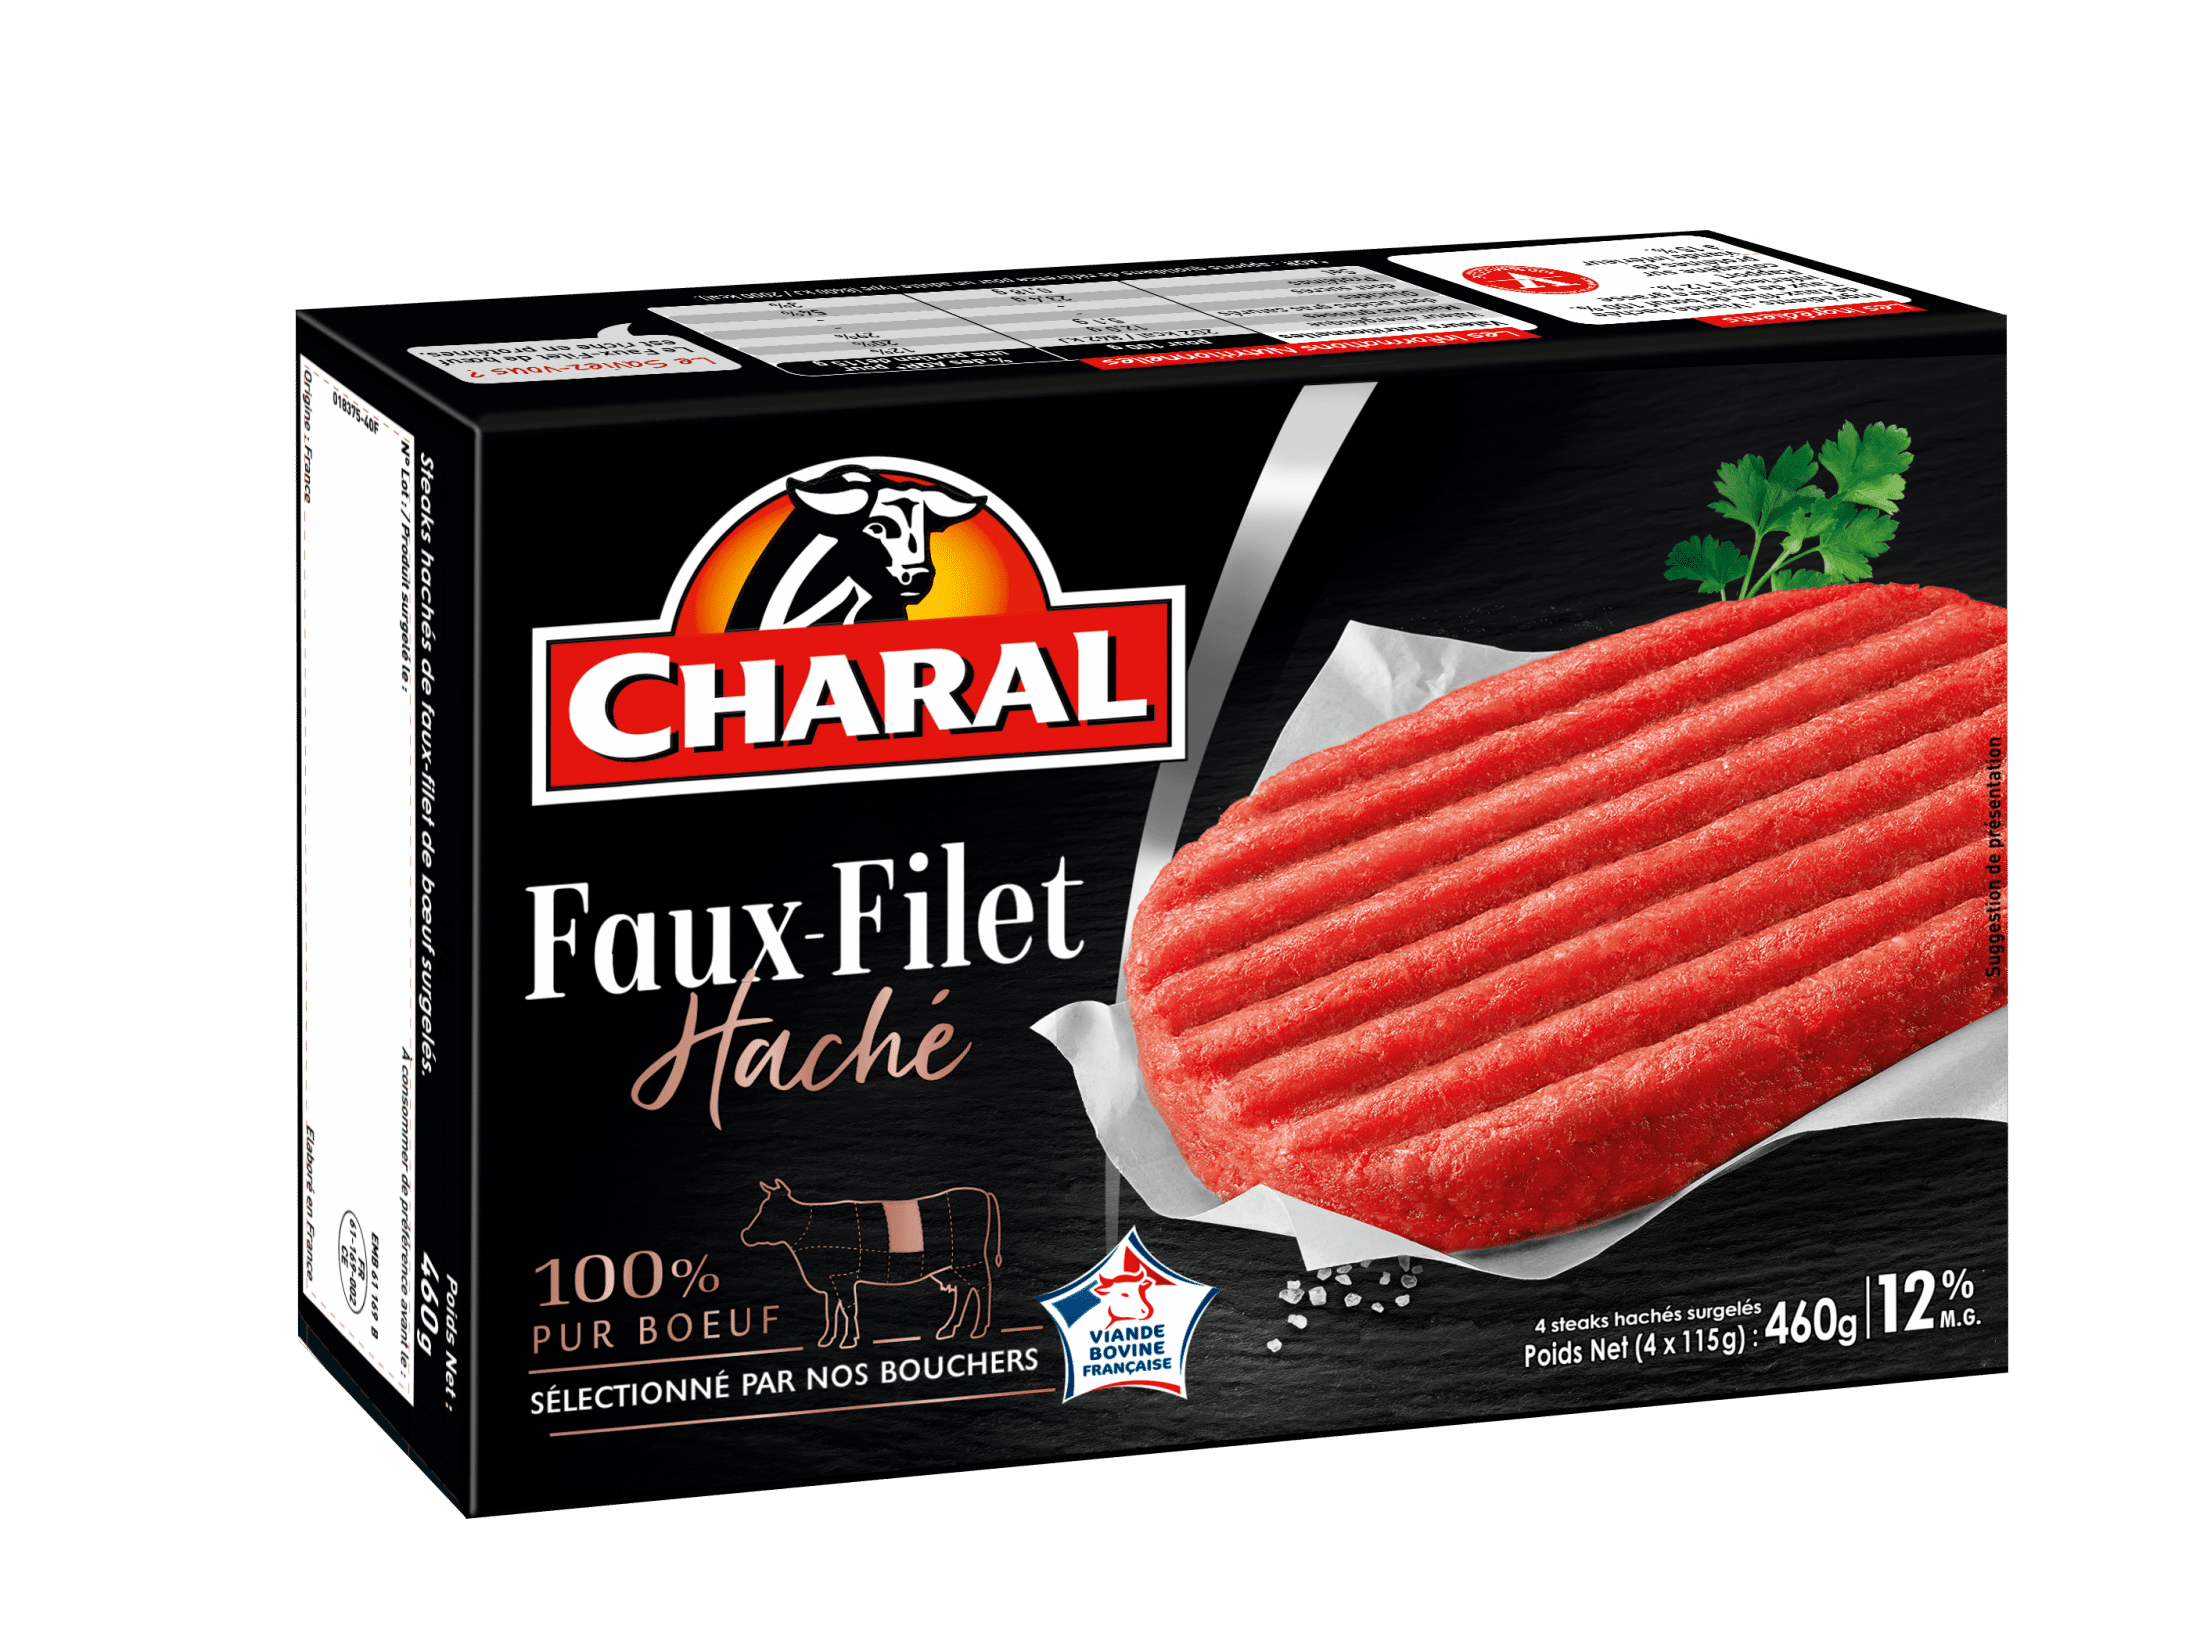 Steak haché de Faux-Filet de bœuf surgelé 12% MG à poêler - charal.fr